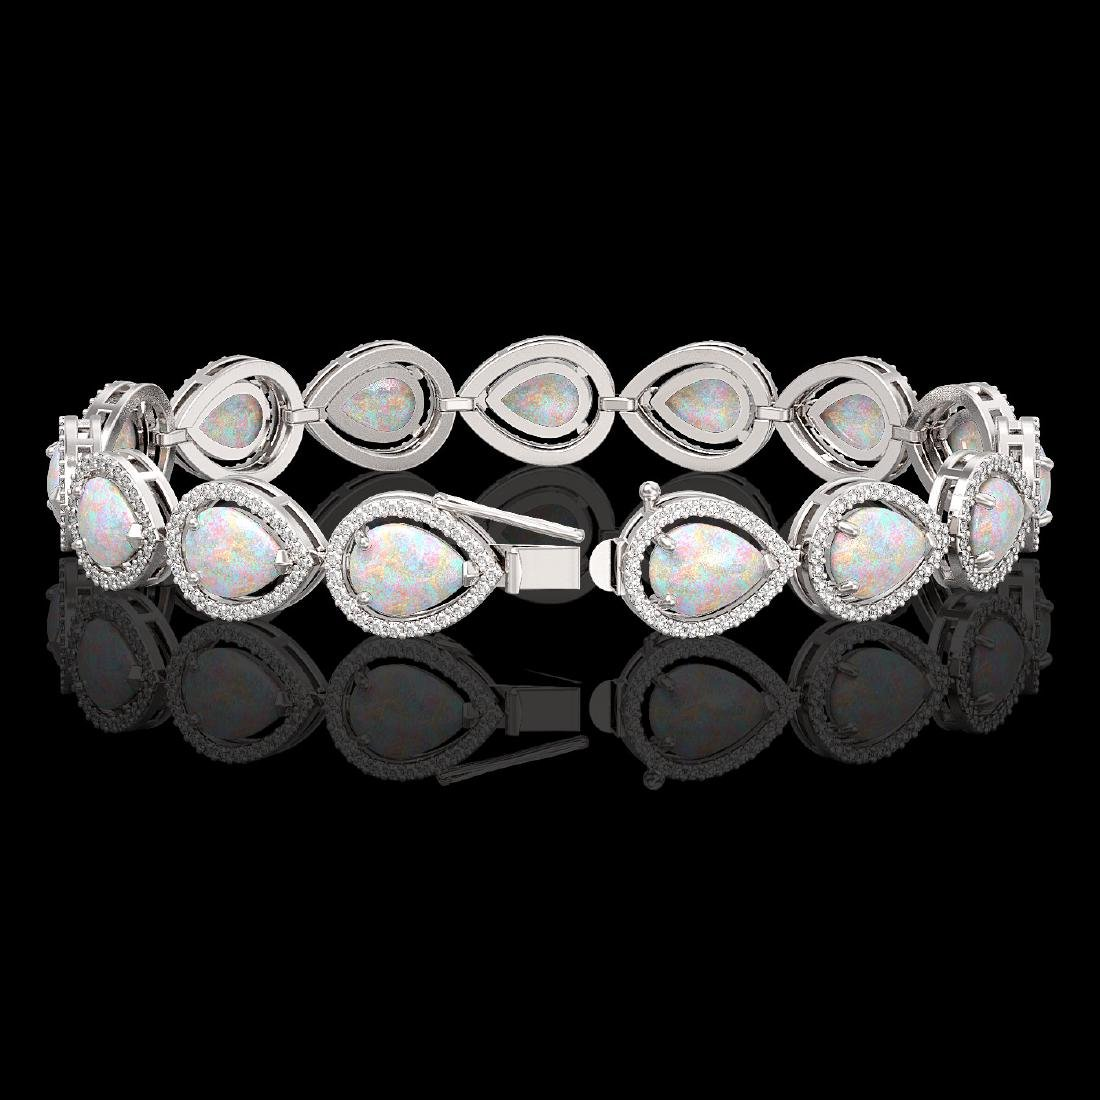 17.15 CTW Opal & Diamond Halo Bracelet 10K White Gold - 2